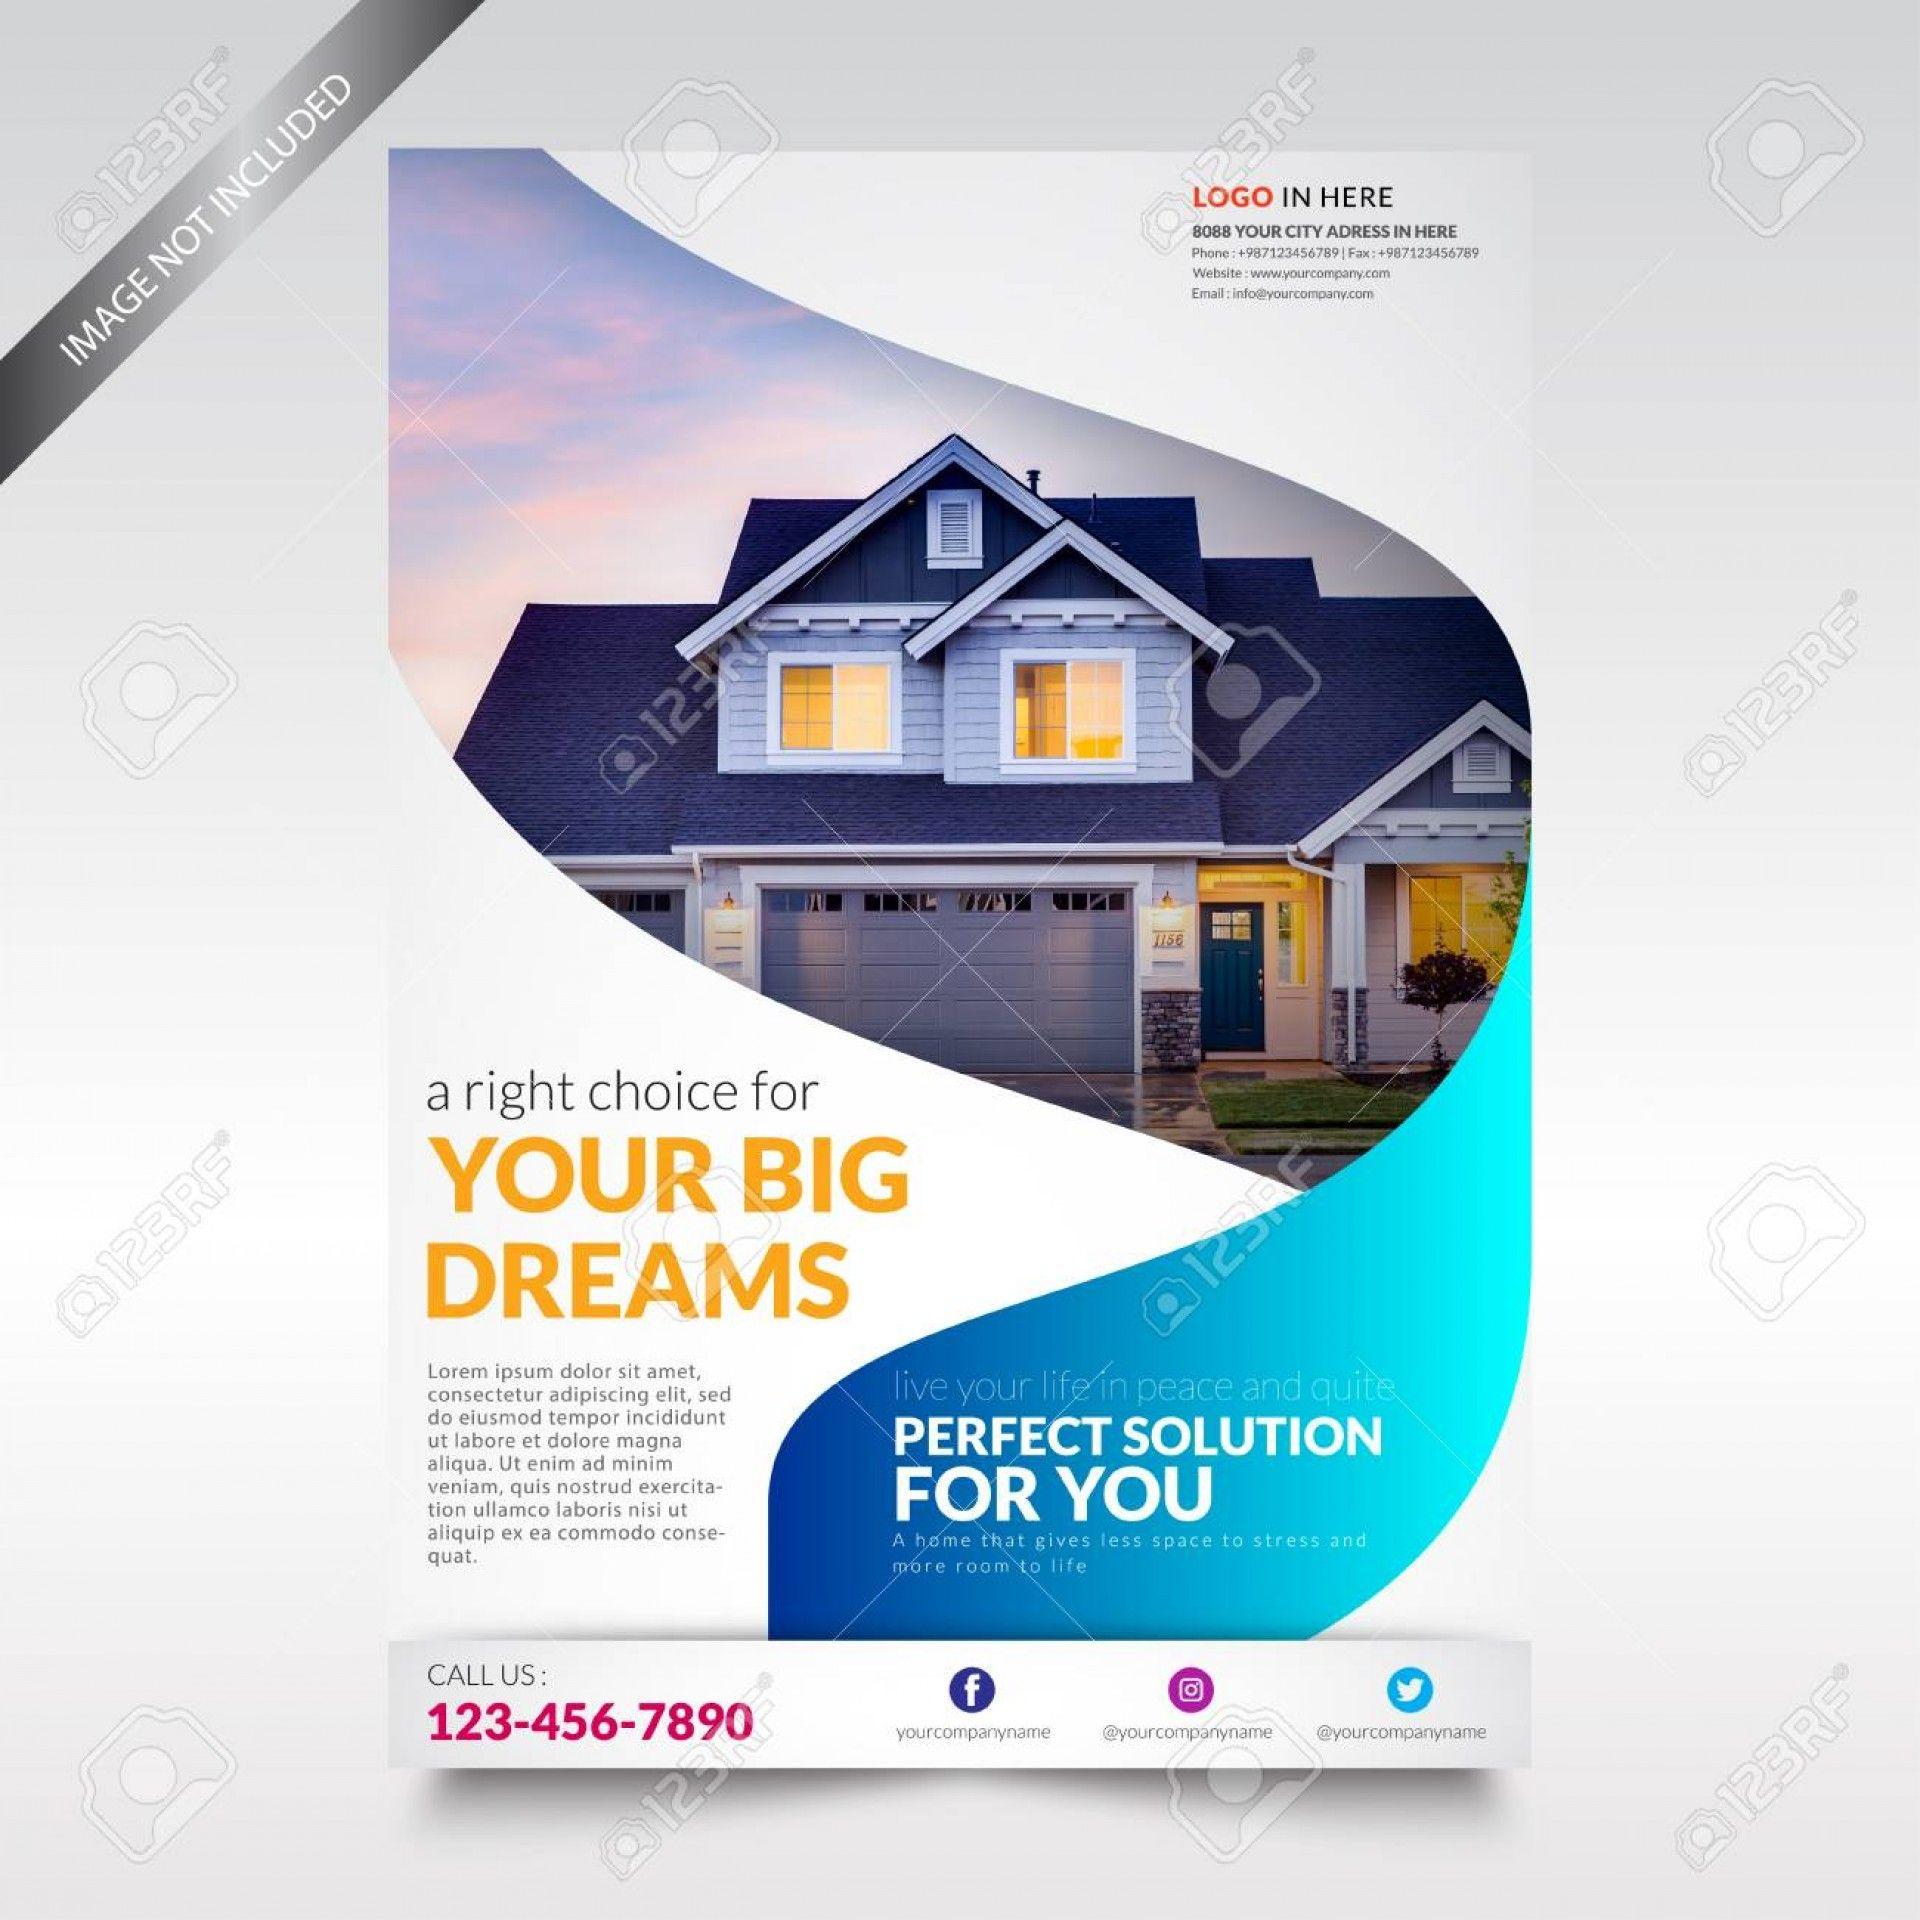 001 Surprising Real Estate Flyer Template Free Picture  Publisher Commercial Pdf DownloadFull